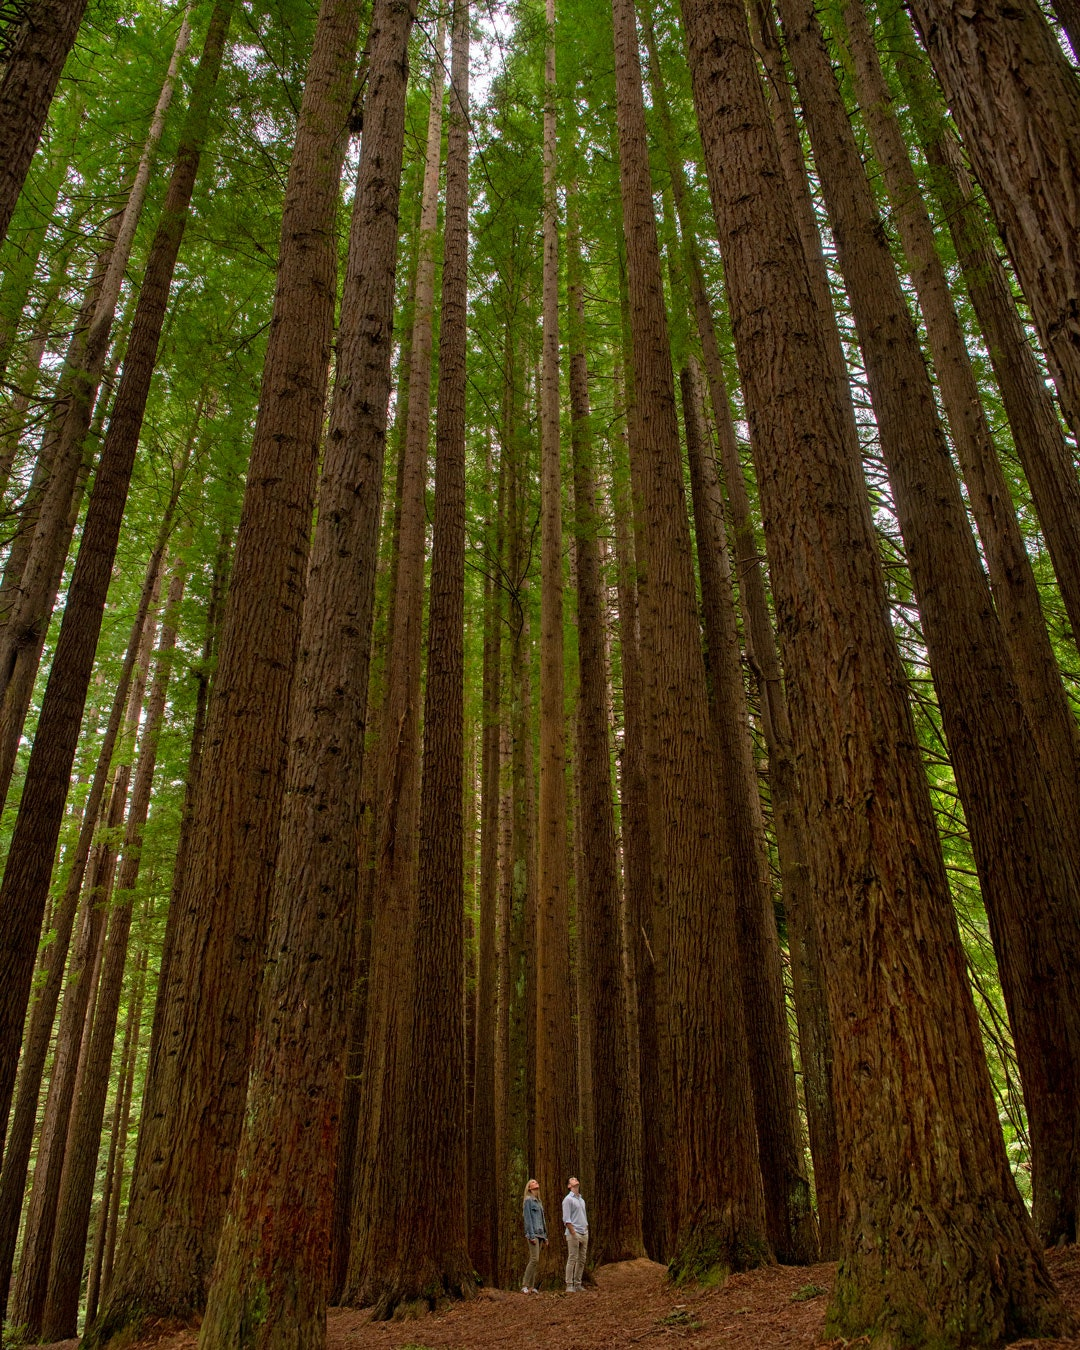 Two people staring up in amazement at the height of the Californian Redwoods outside of Warburton, Victoria.